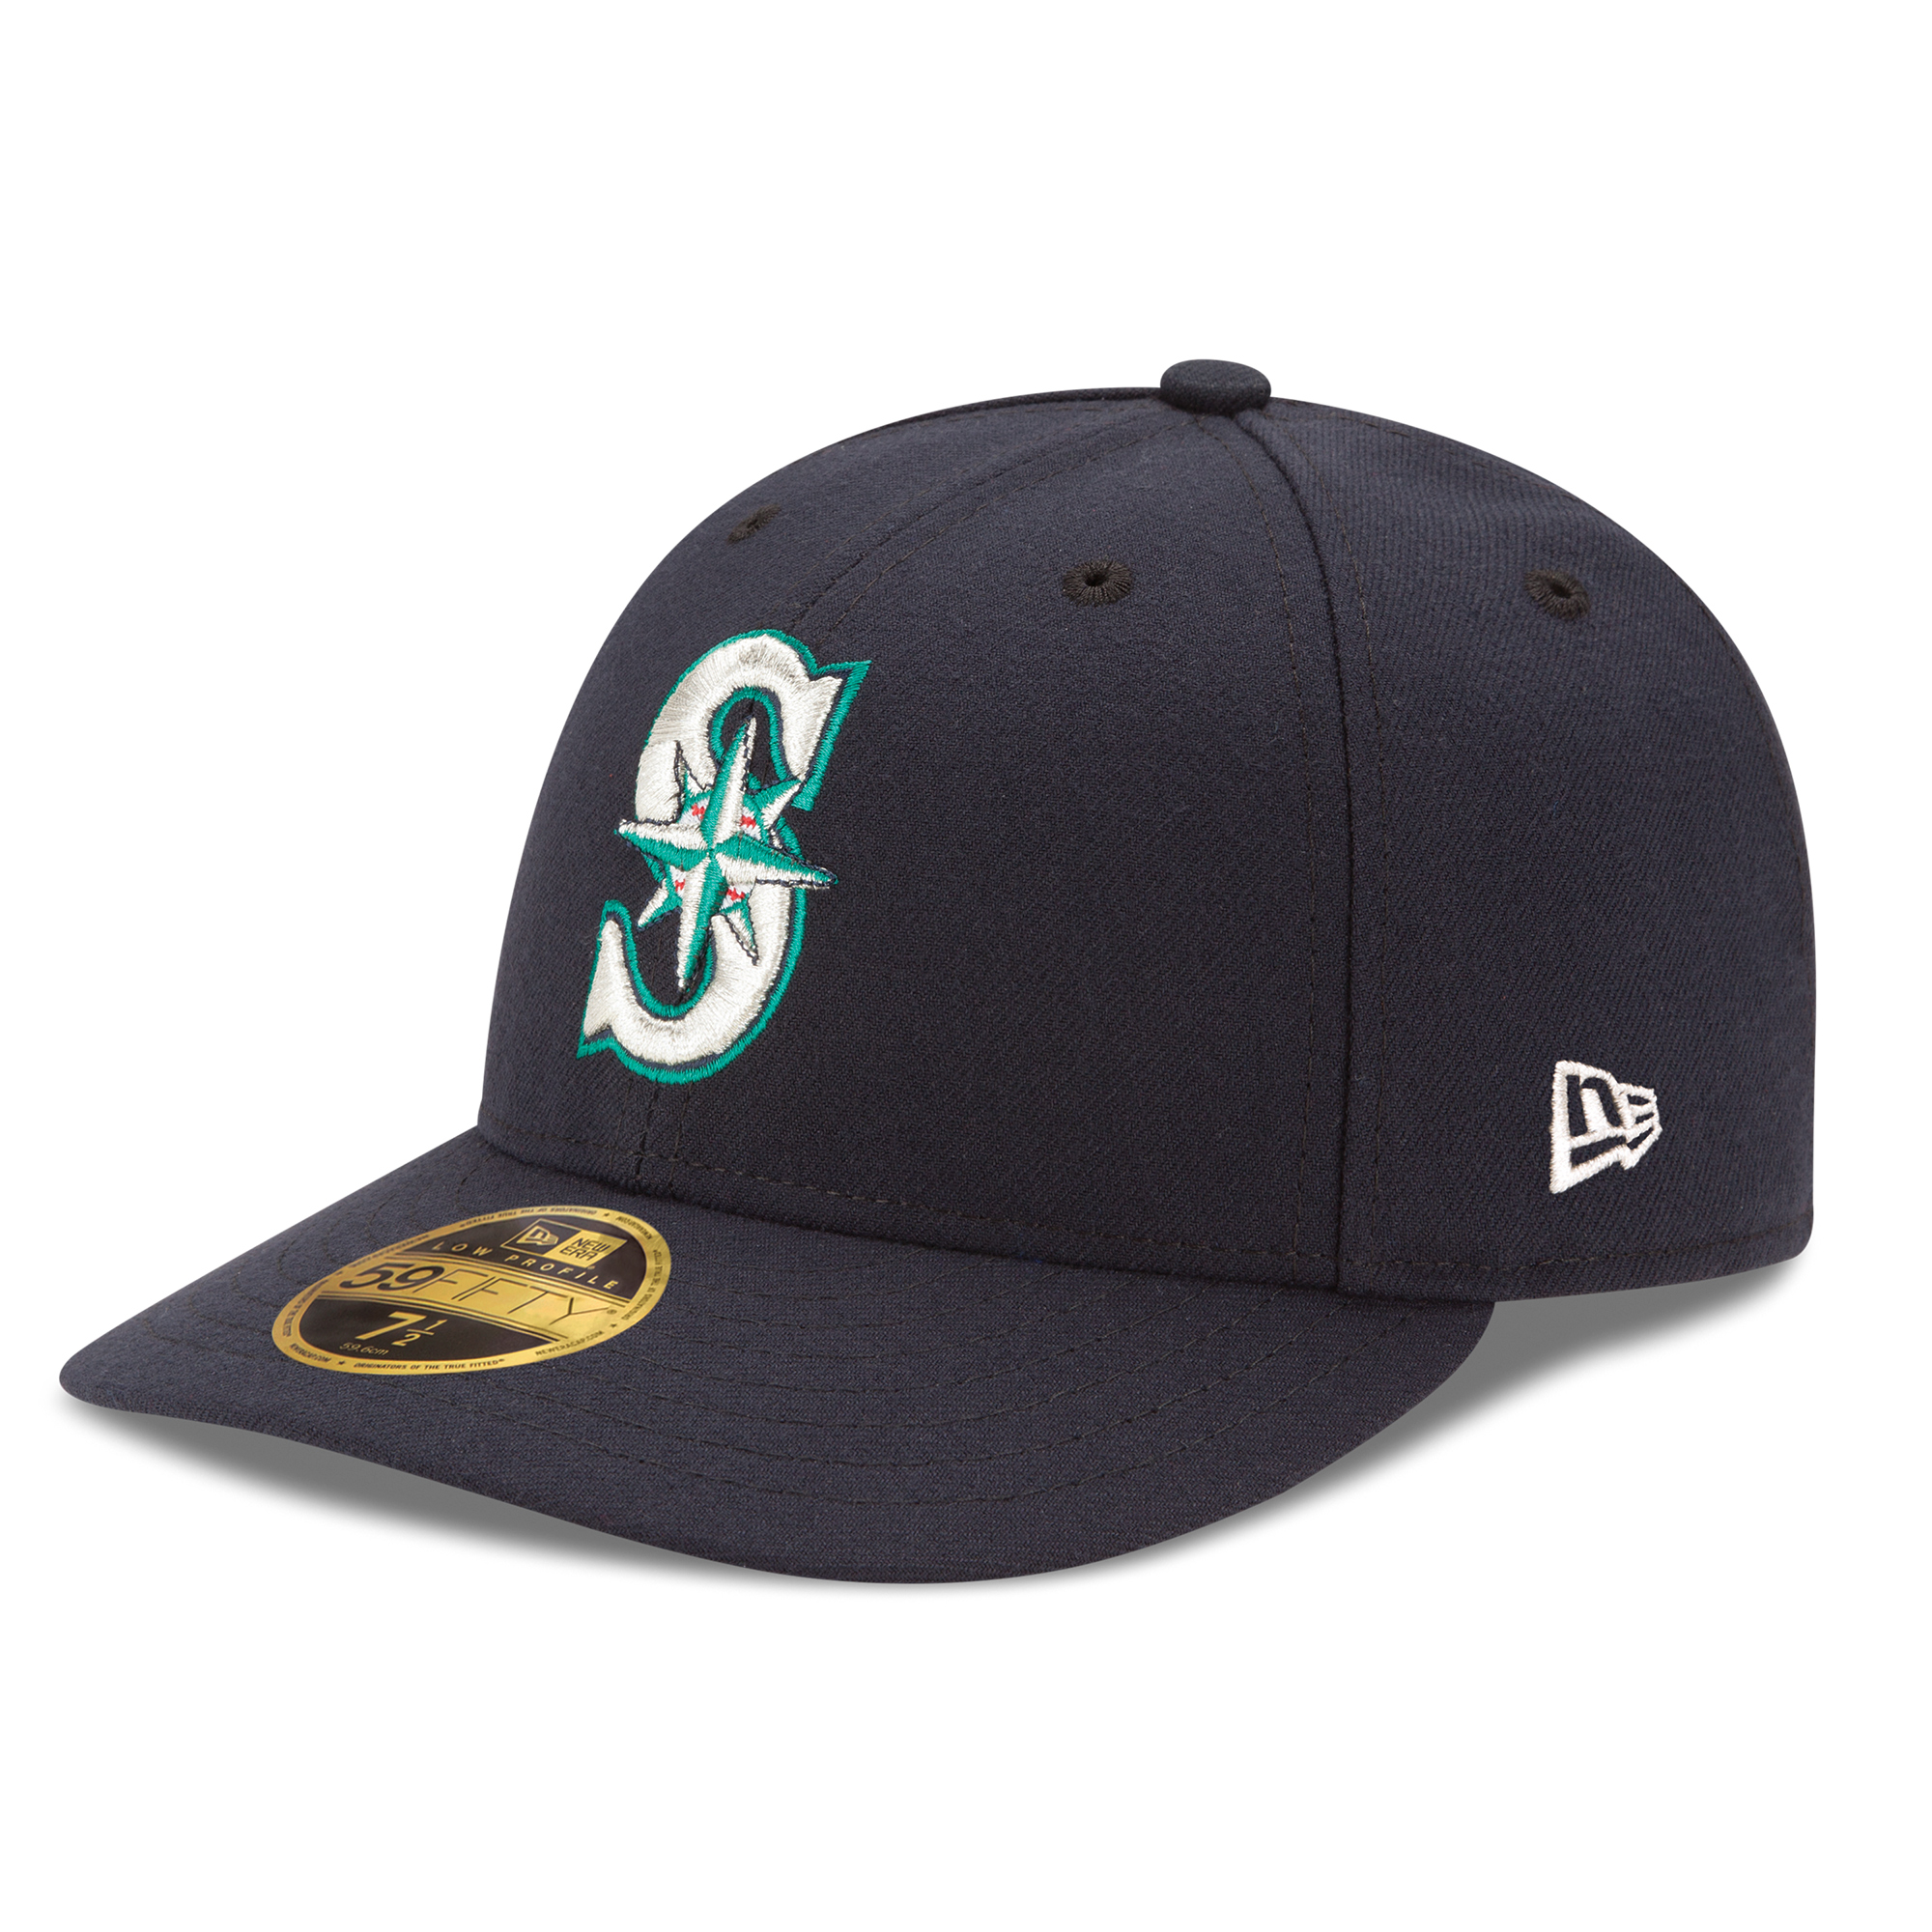 Seattle Mariners New Era Authentic Collection On Field Low Profile Game 59FIFTY Fitted Hat - Navy